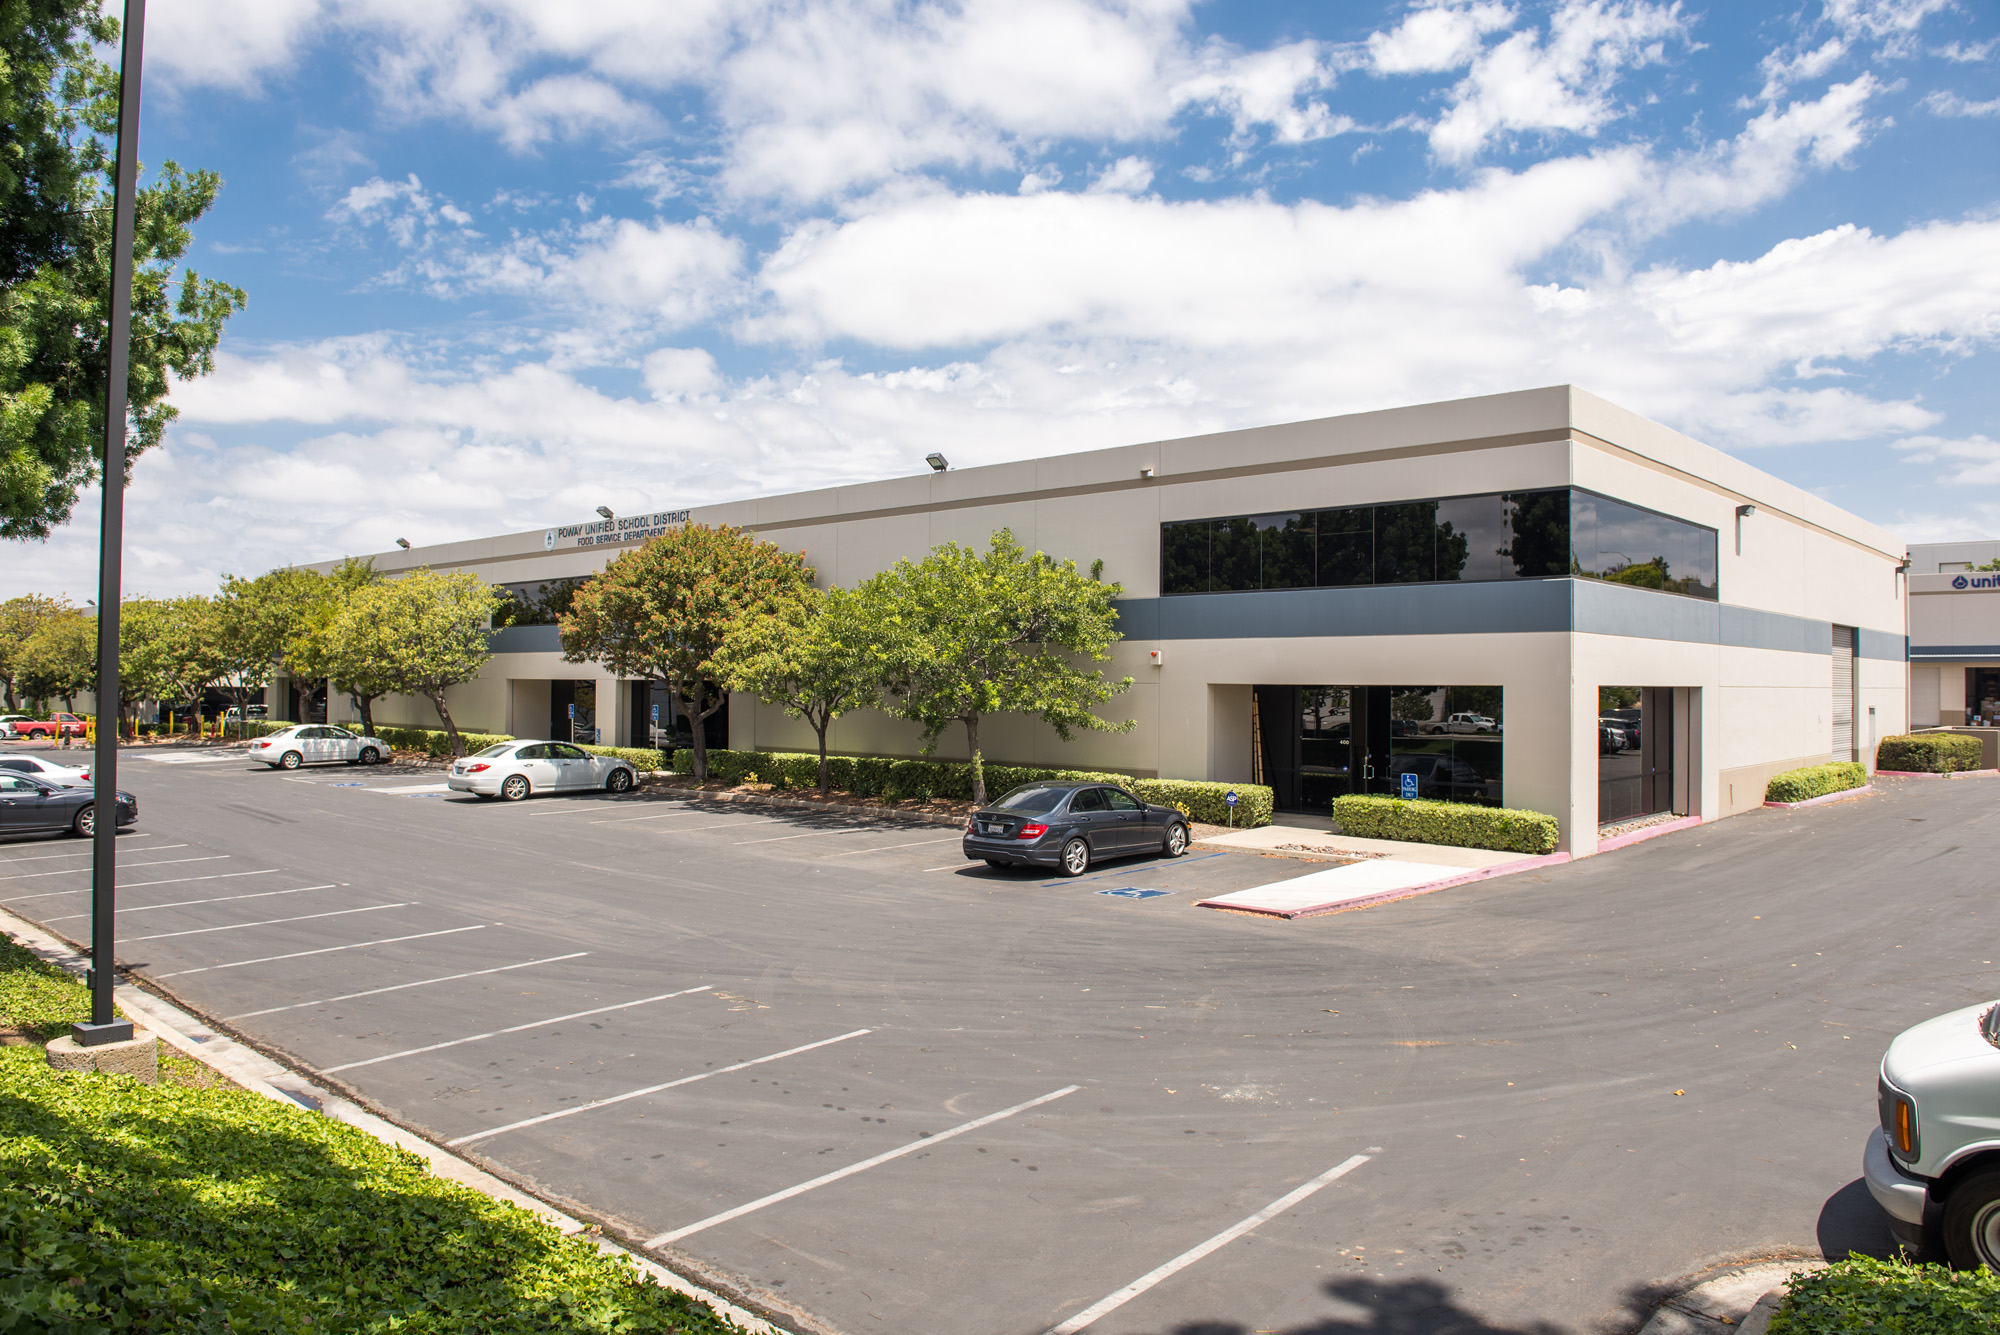 Wide-Angle Exterior photo of building entrance and roll up door at Poway Industrial Center